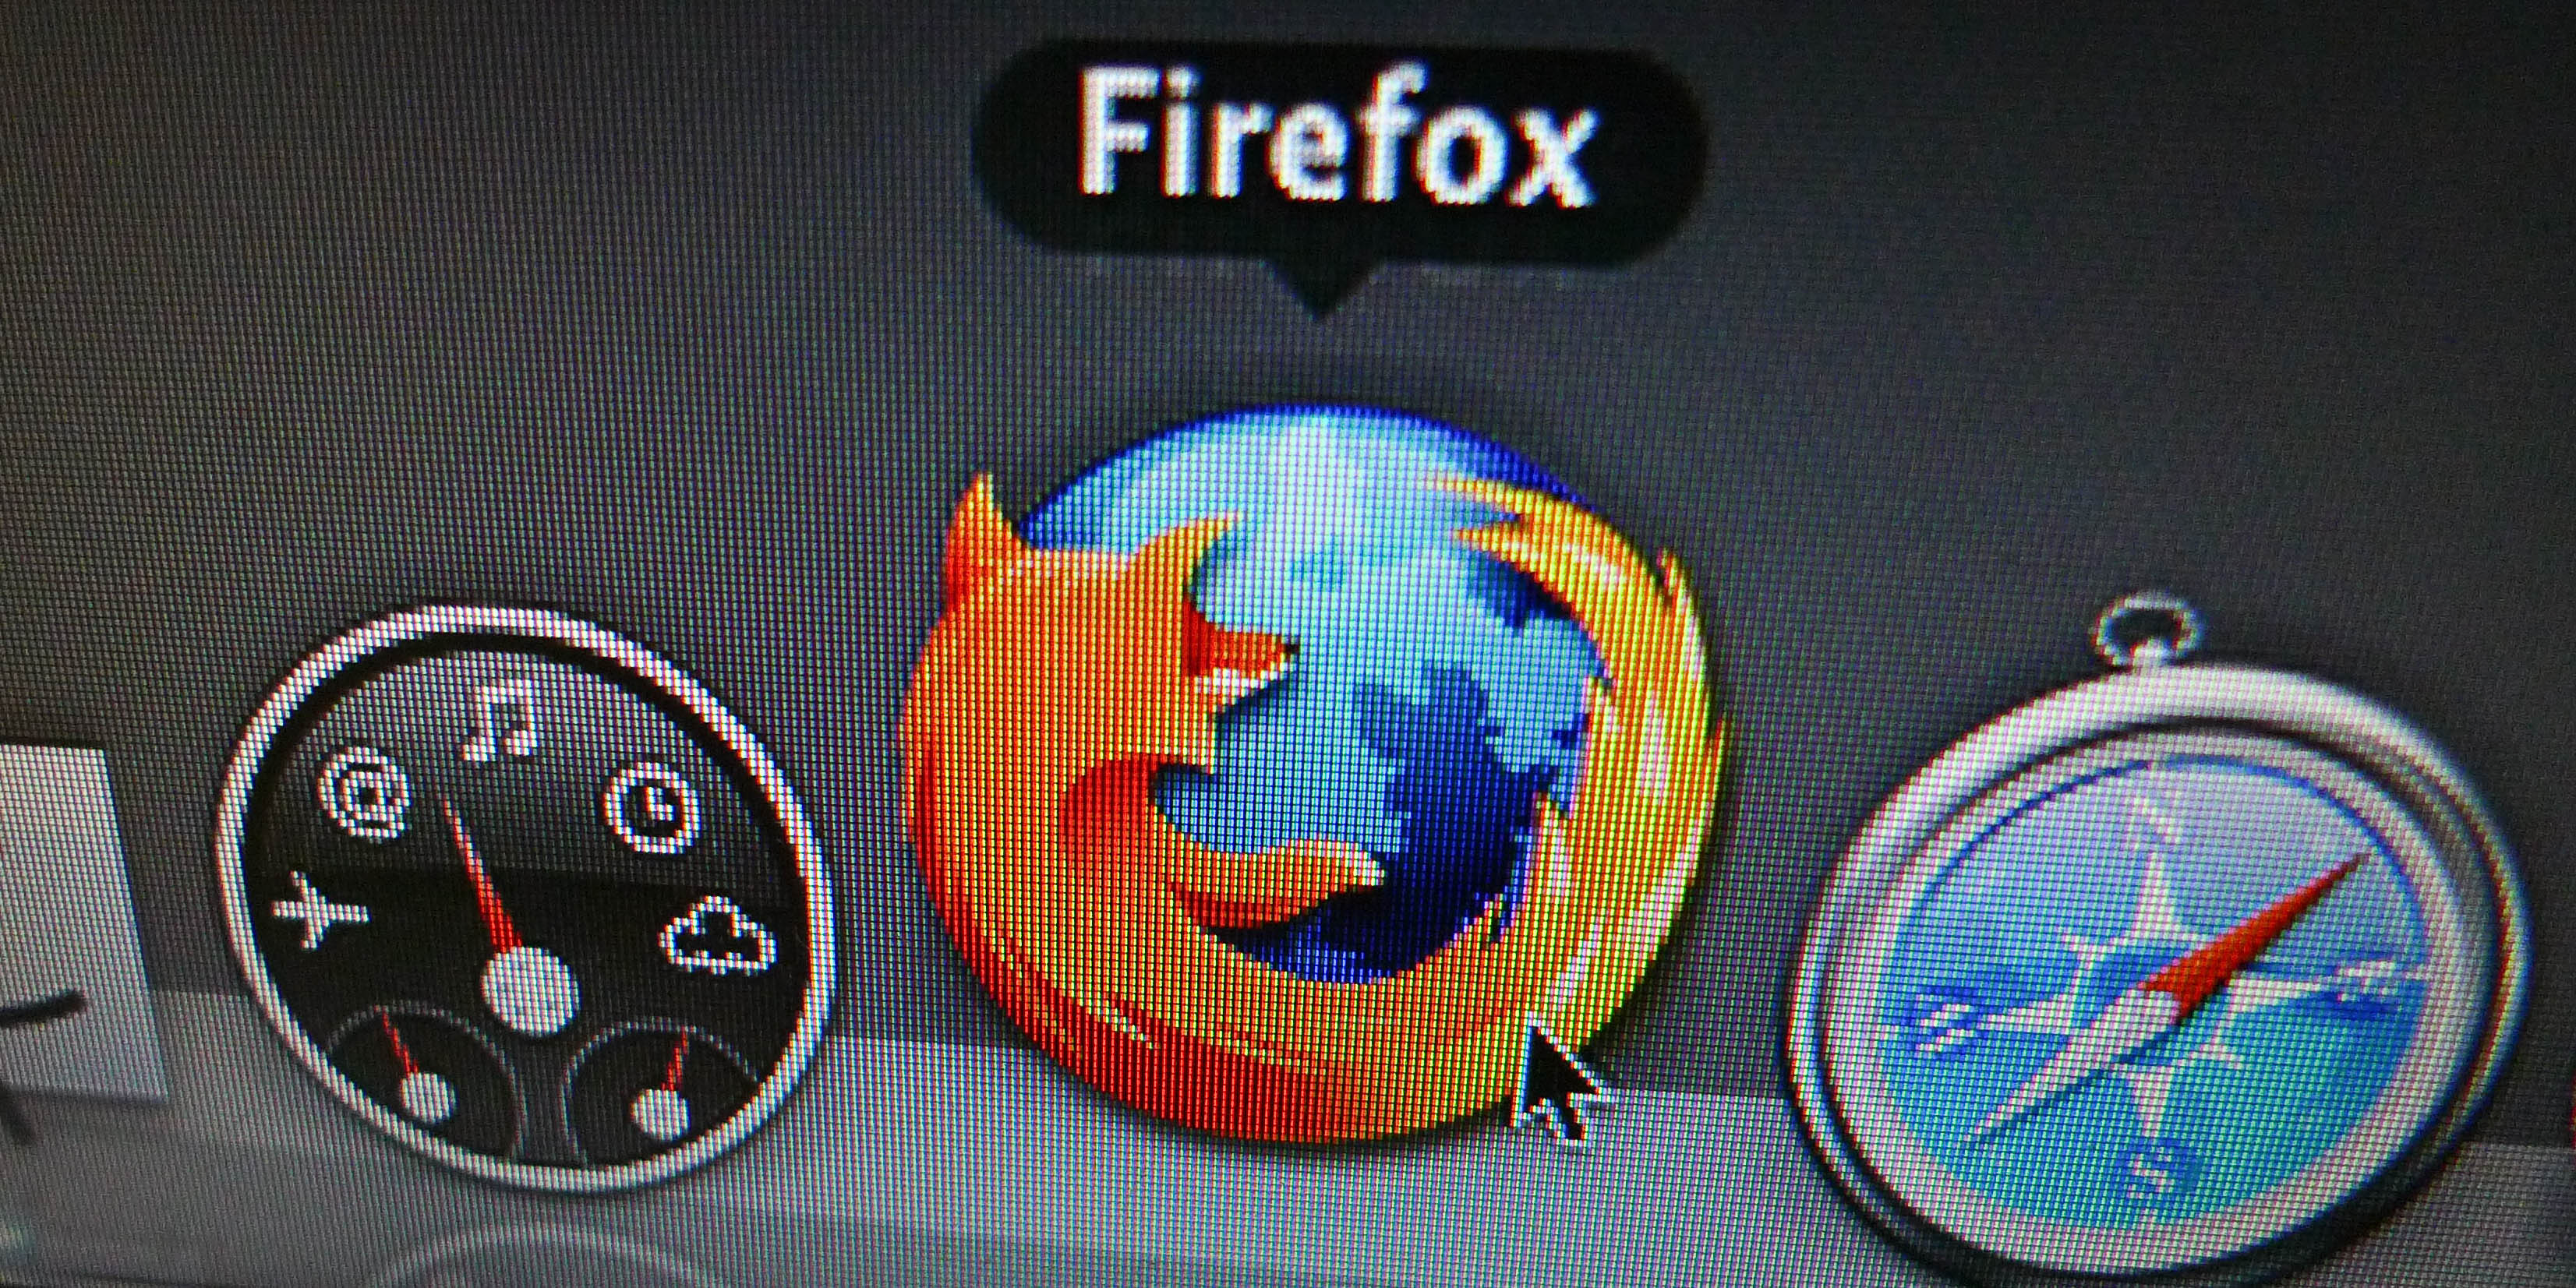 There's a Firefox Exploit in the Wild — You Should Update Right Now